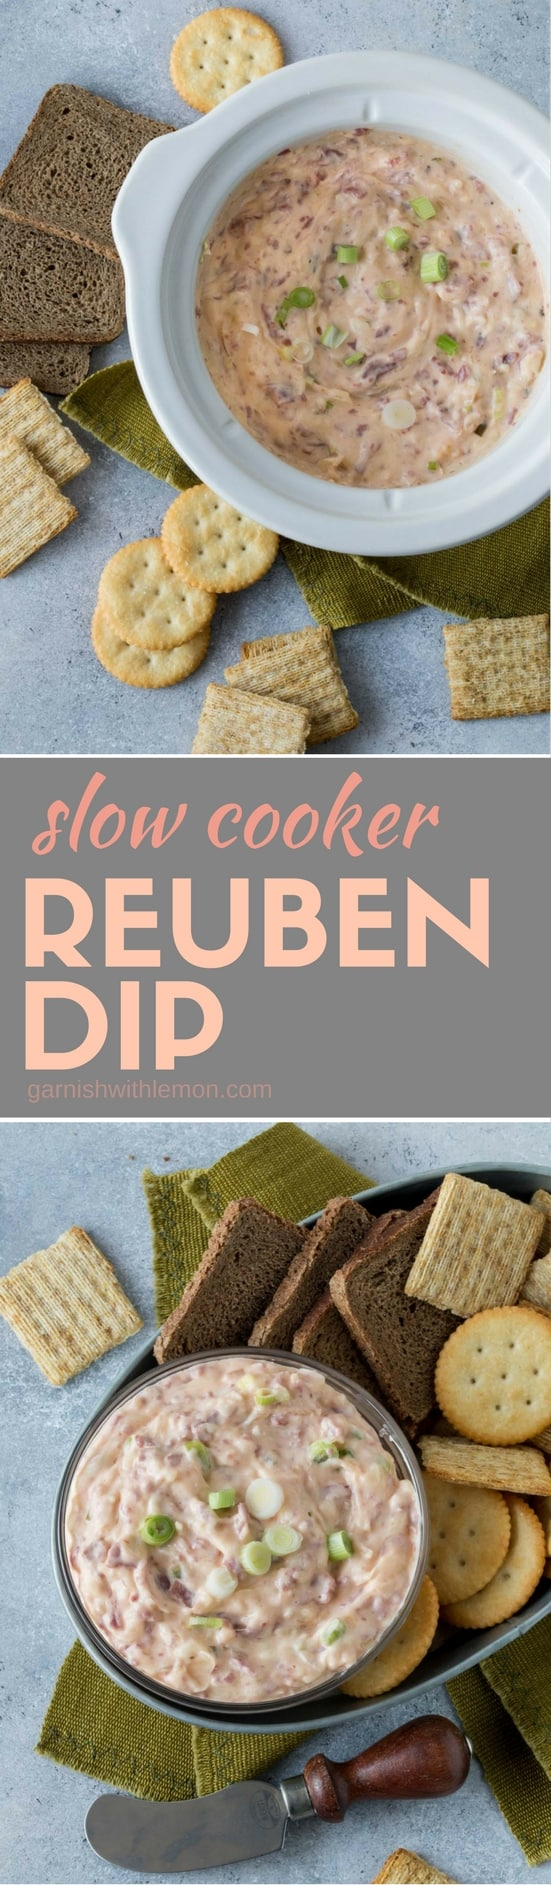 Slow cookers are always your friend when it comes to party planning. Just measure, chop and mix and let the crock pot work its magic with this Slow Cooker Reuben Dip. #slowcooker #crockpot #appetizers #diprecipe